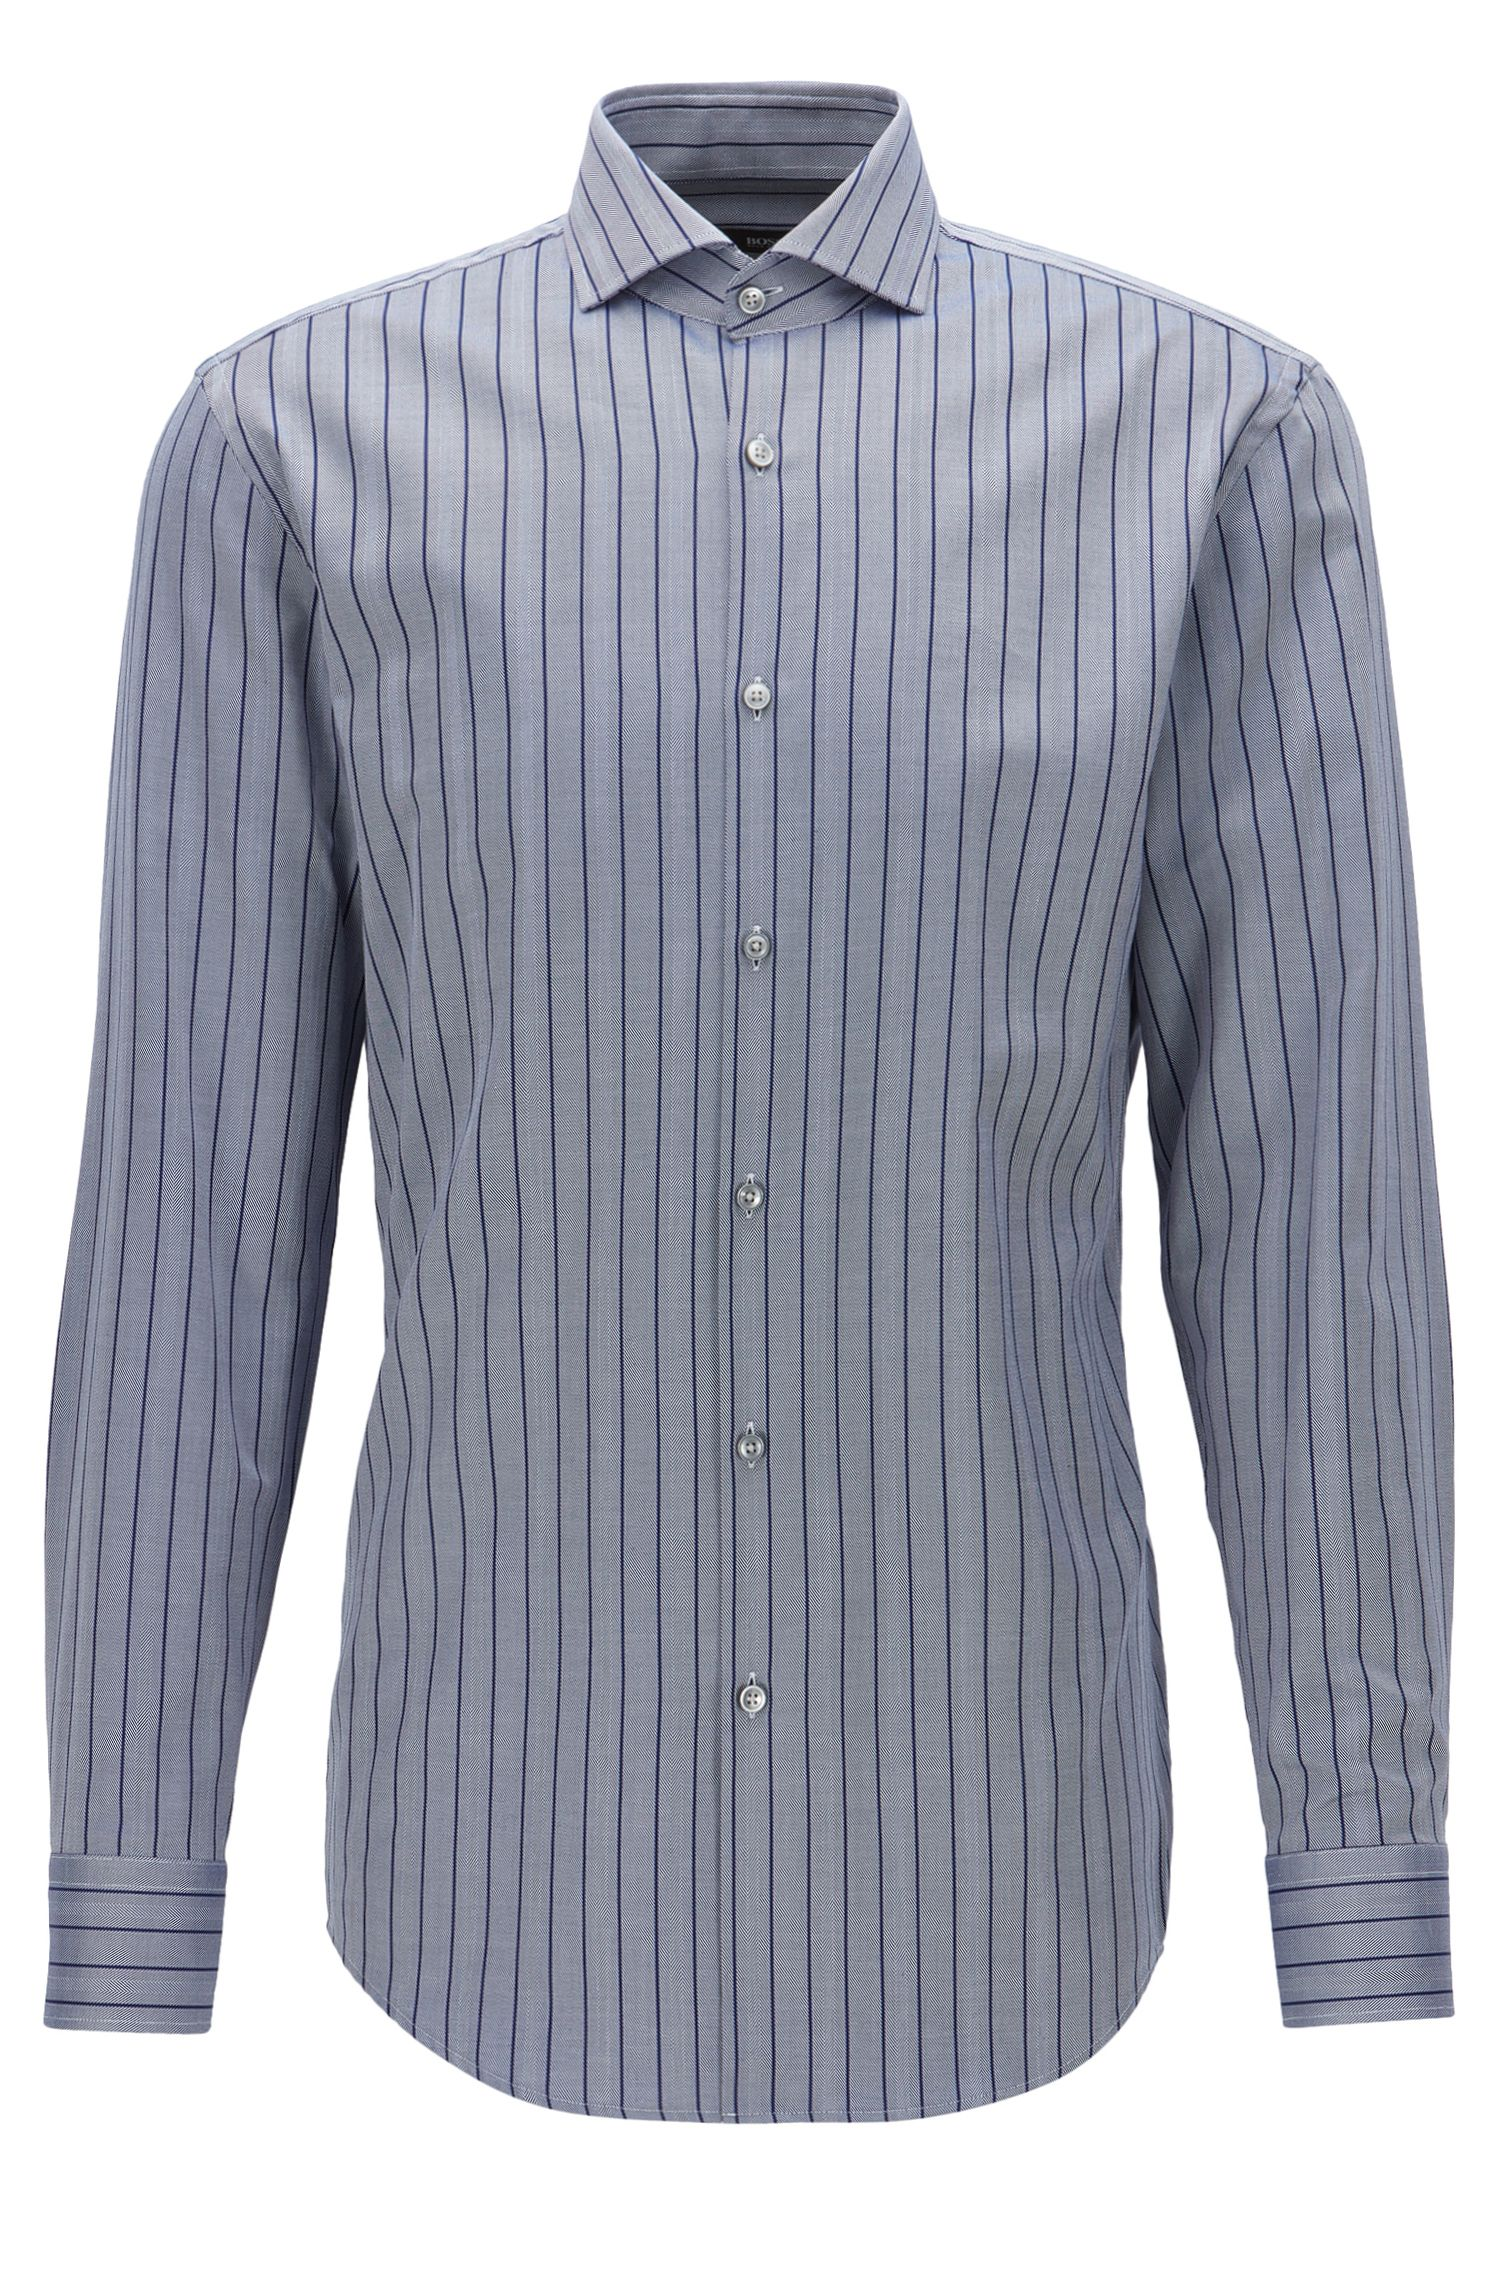 Striped Herringbone Cotton Dress Shirt, Slim Fit | Jason